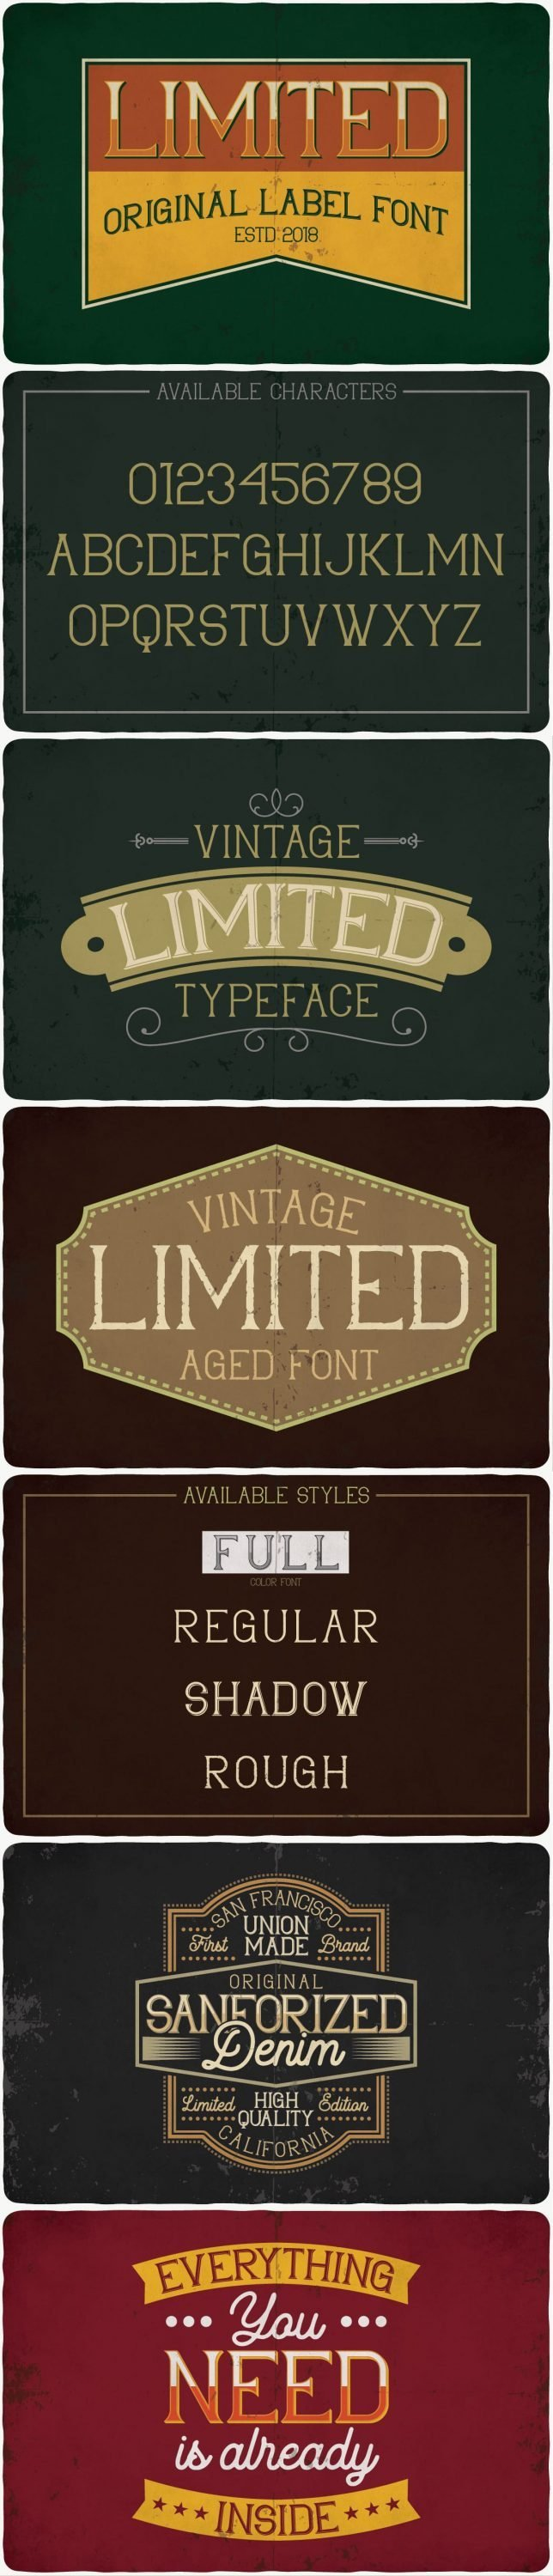 Limited typeface for pinterest.